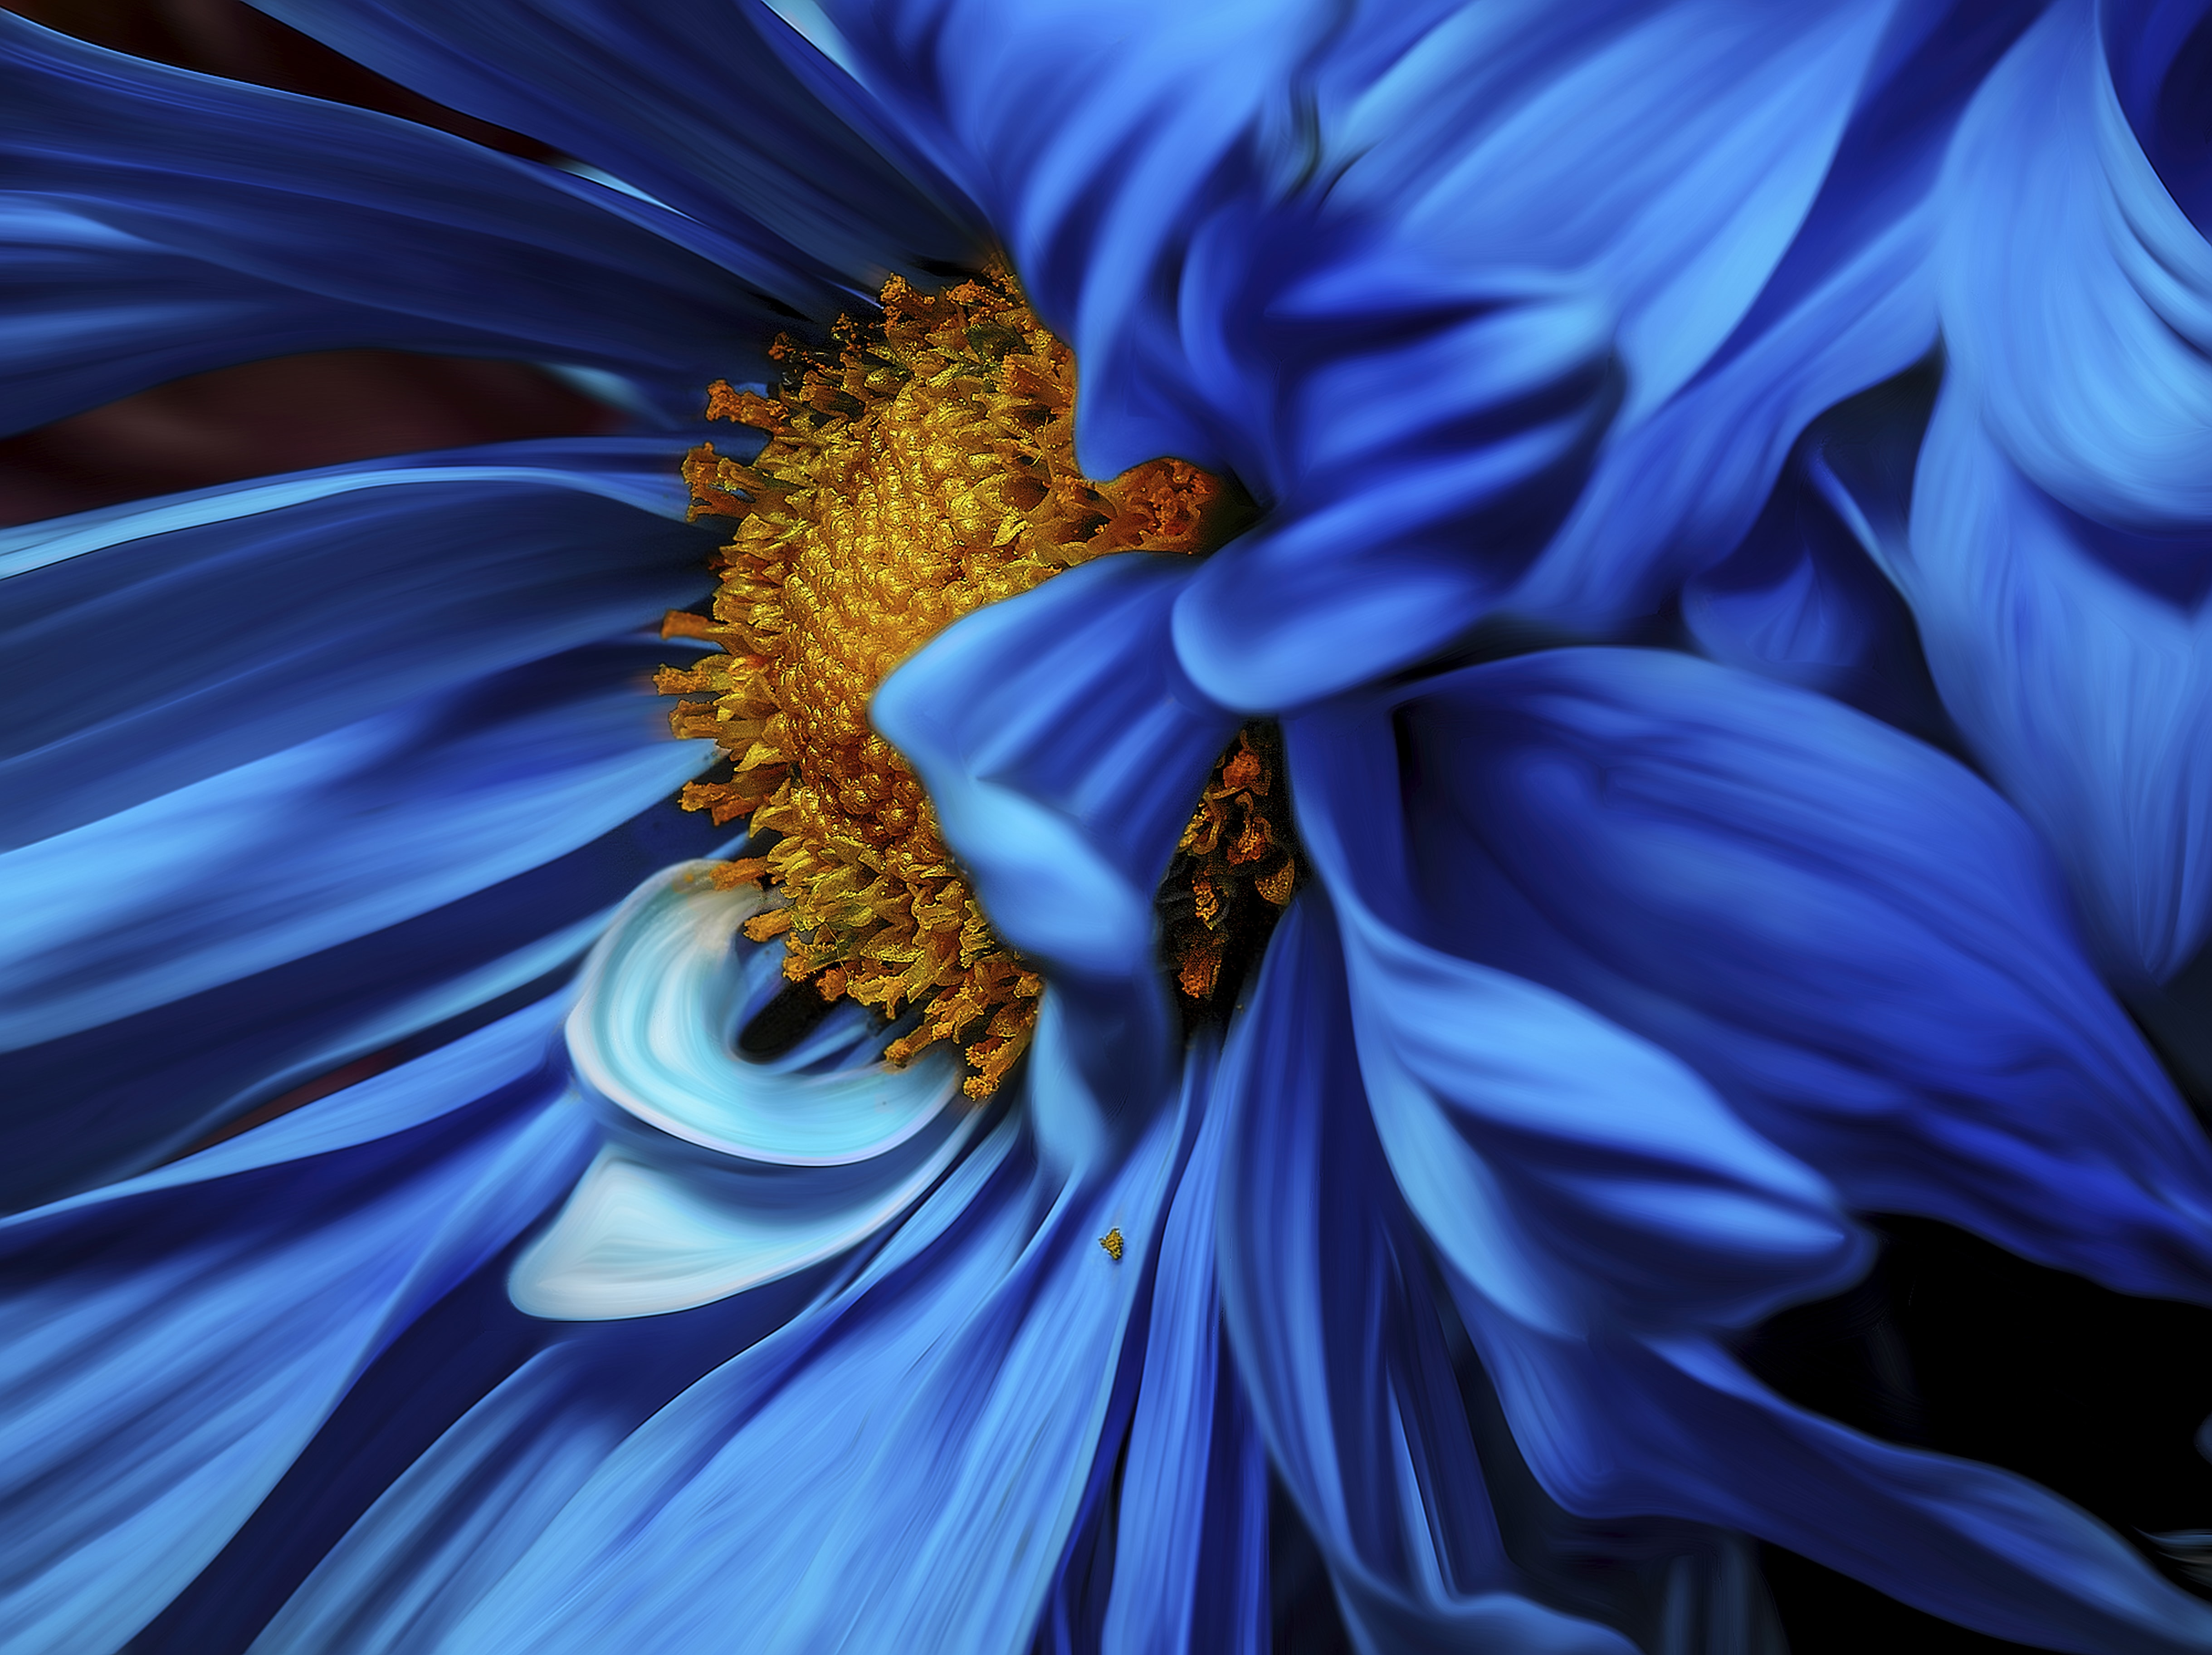 blue flower with yellow pollen